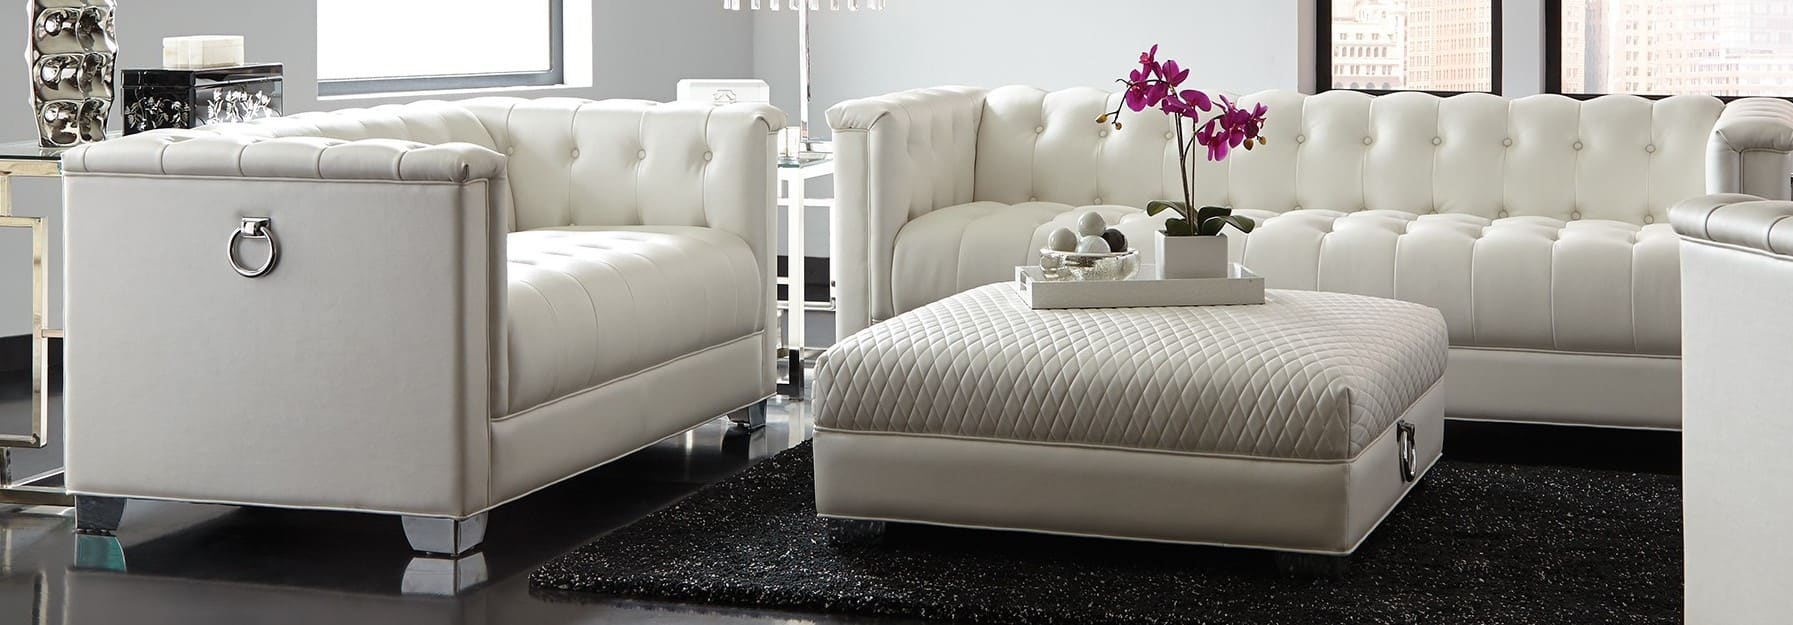 Swell Coaster Chaviano Pearl White 2 Piece Living Room Set Reviews Goedekers Com Alphanode Cool Chair Designs And Ideas Alphanodeonline